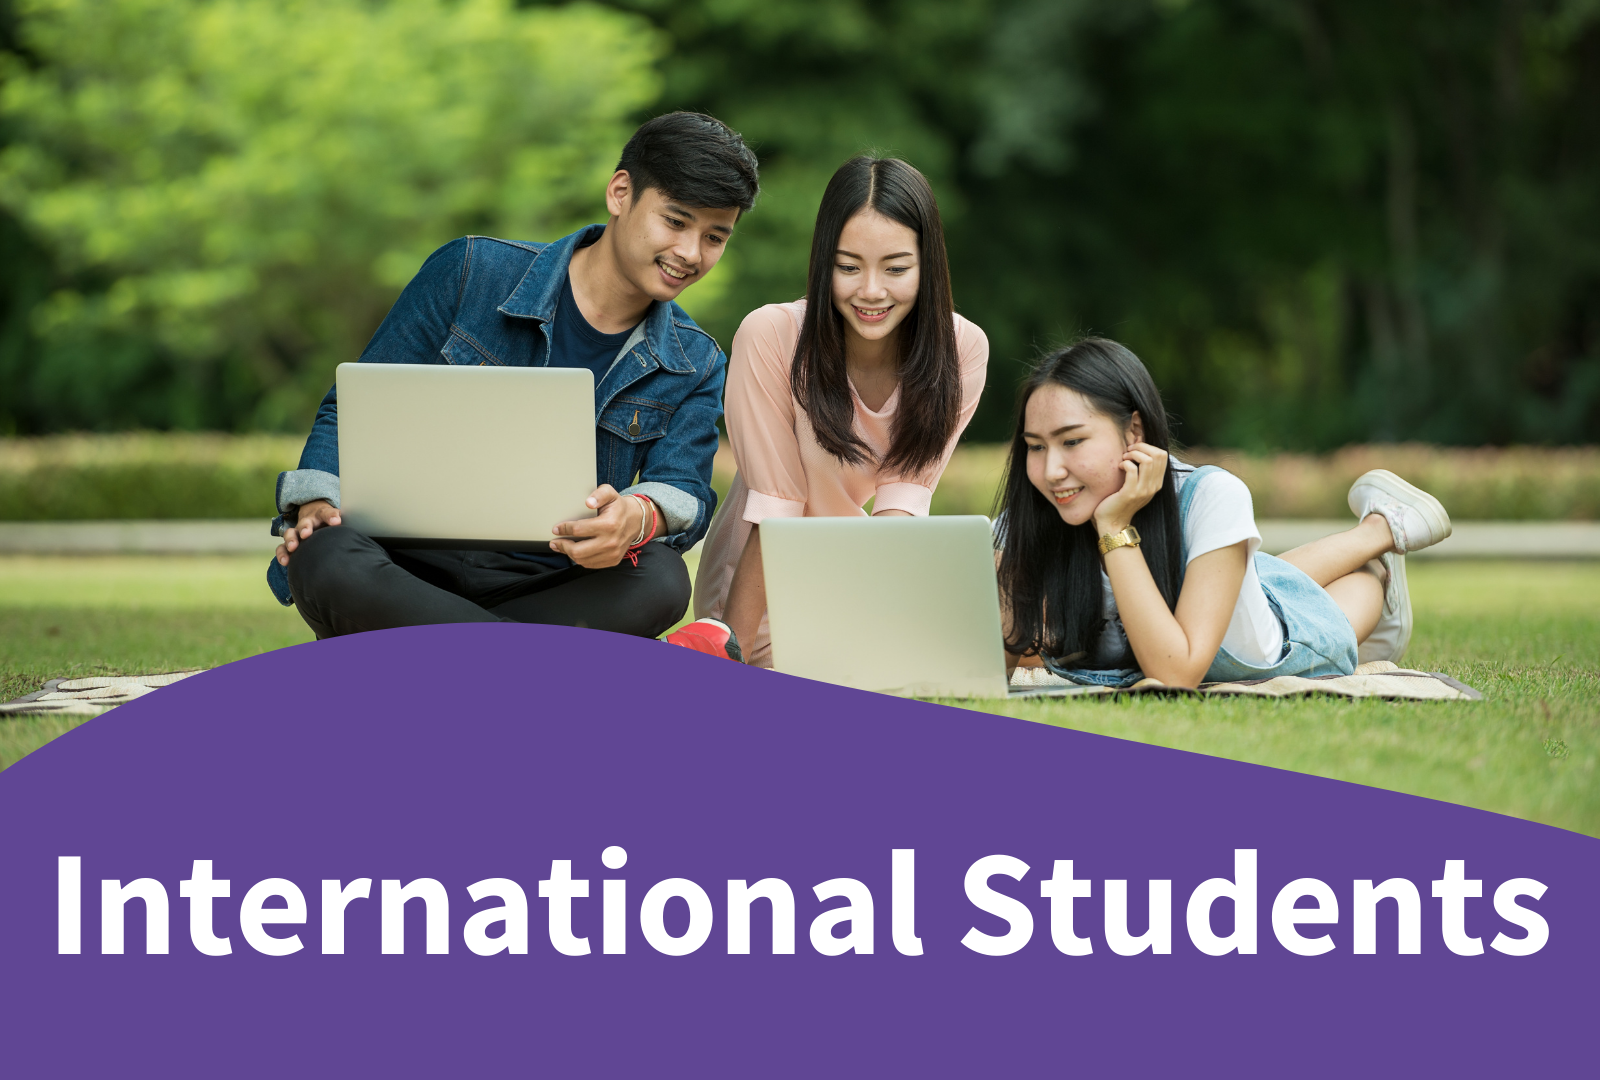 Photo of 3 students in a park - International students